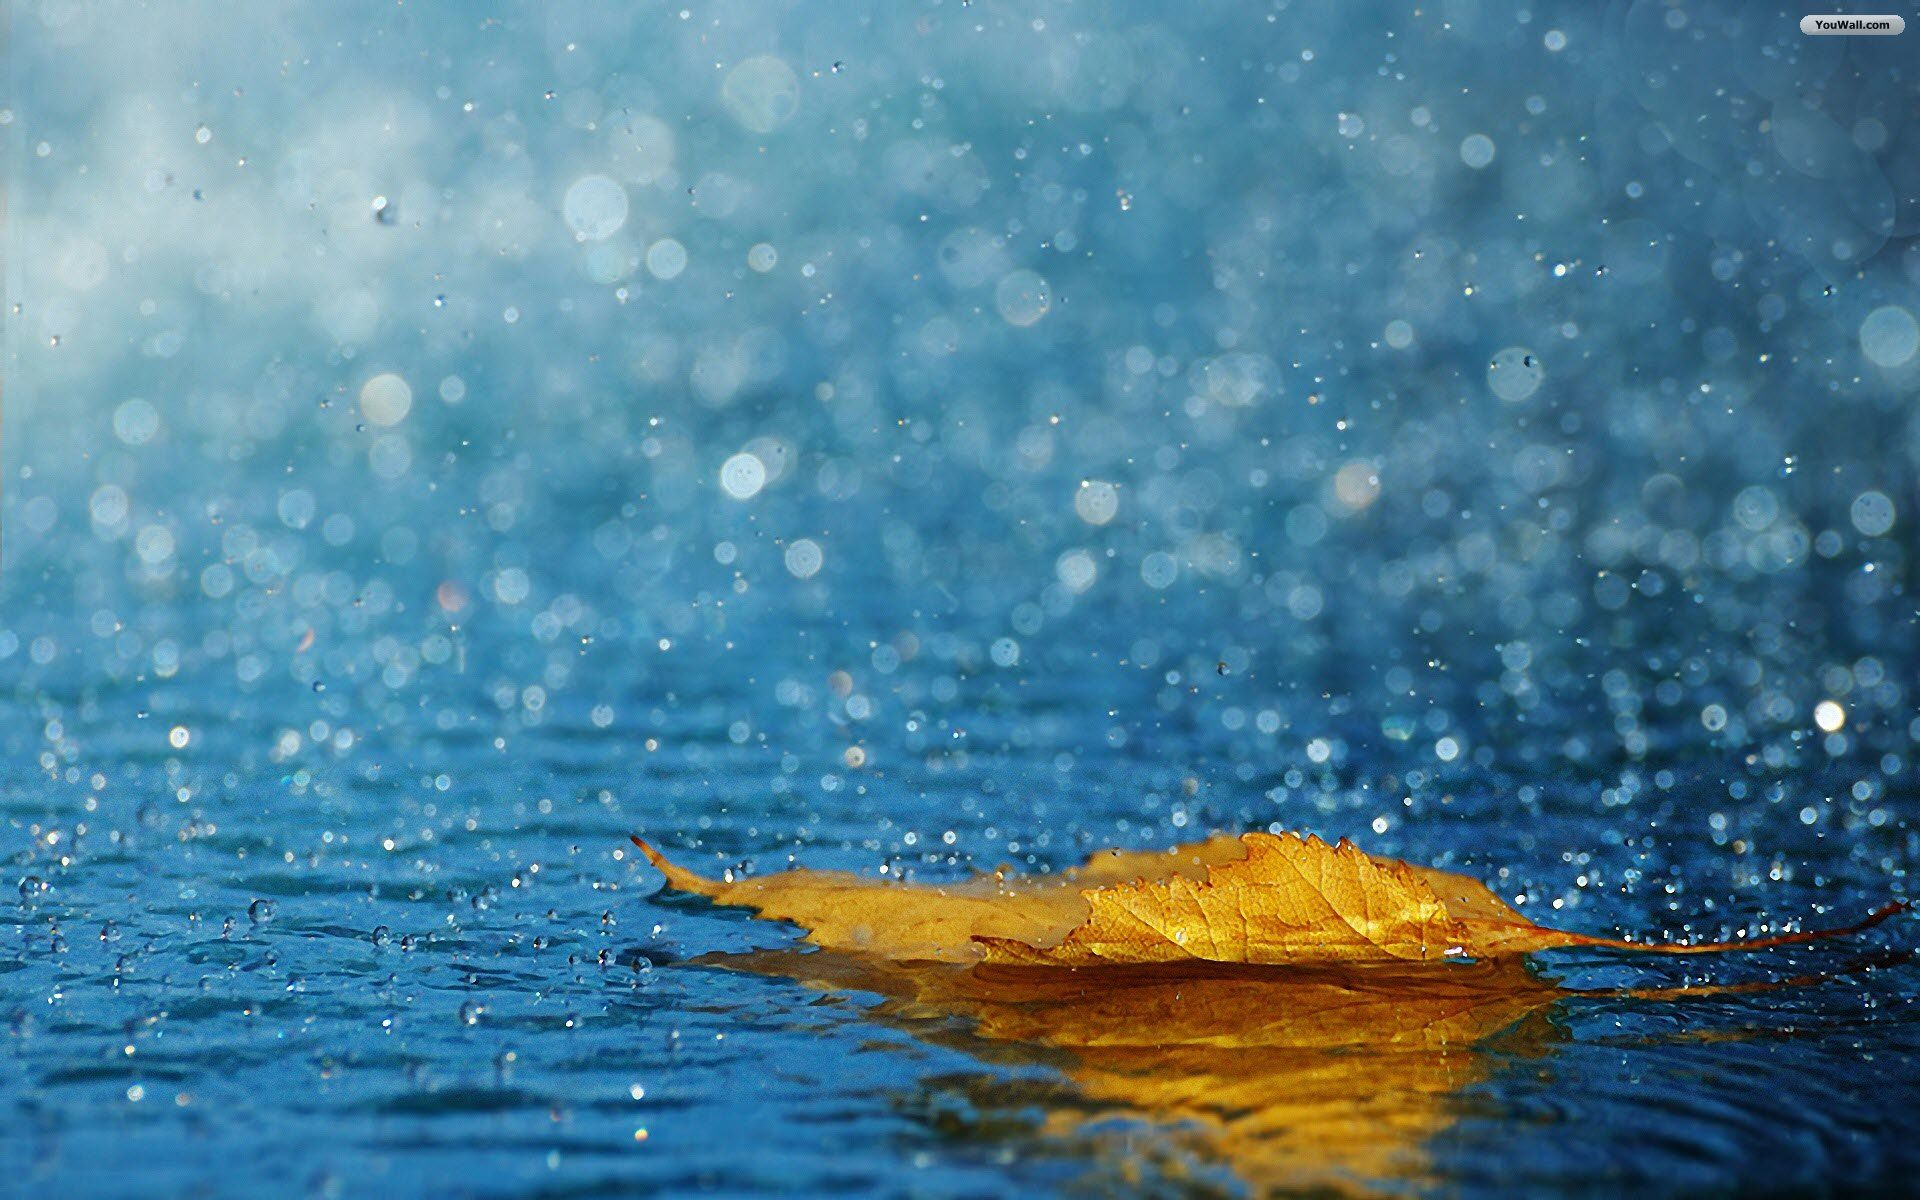 Leaf In The Rain Wallpaper Rain Wallpapers Nature Wallpaper Rain Quotes